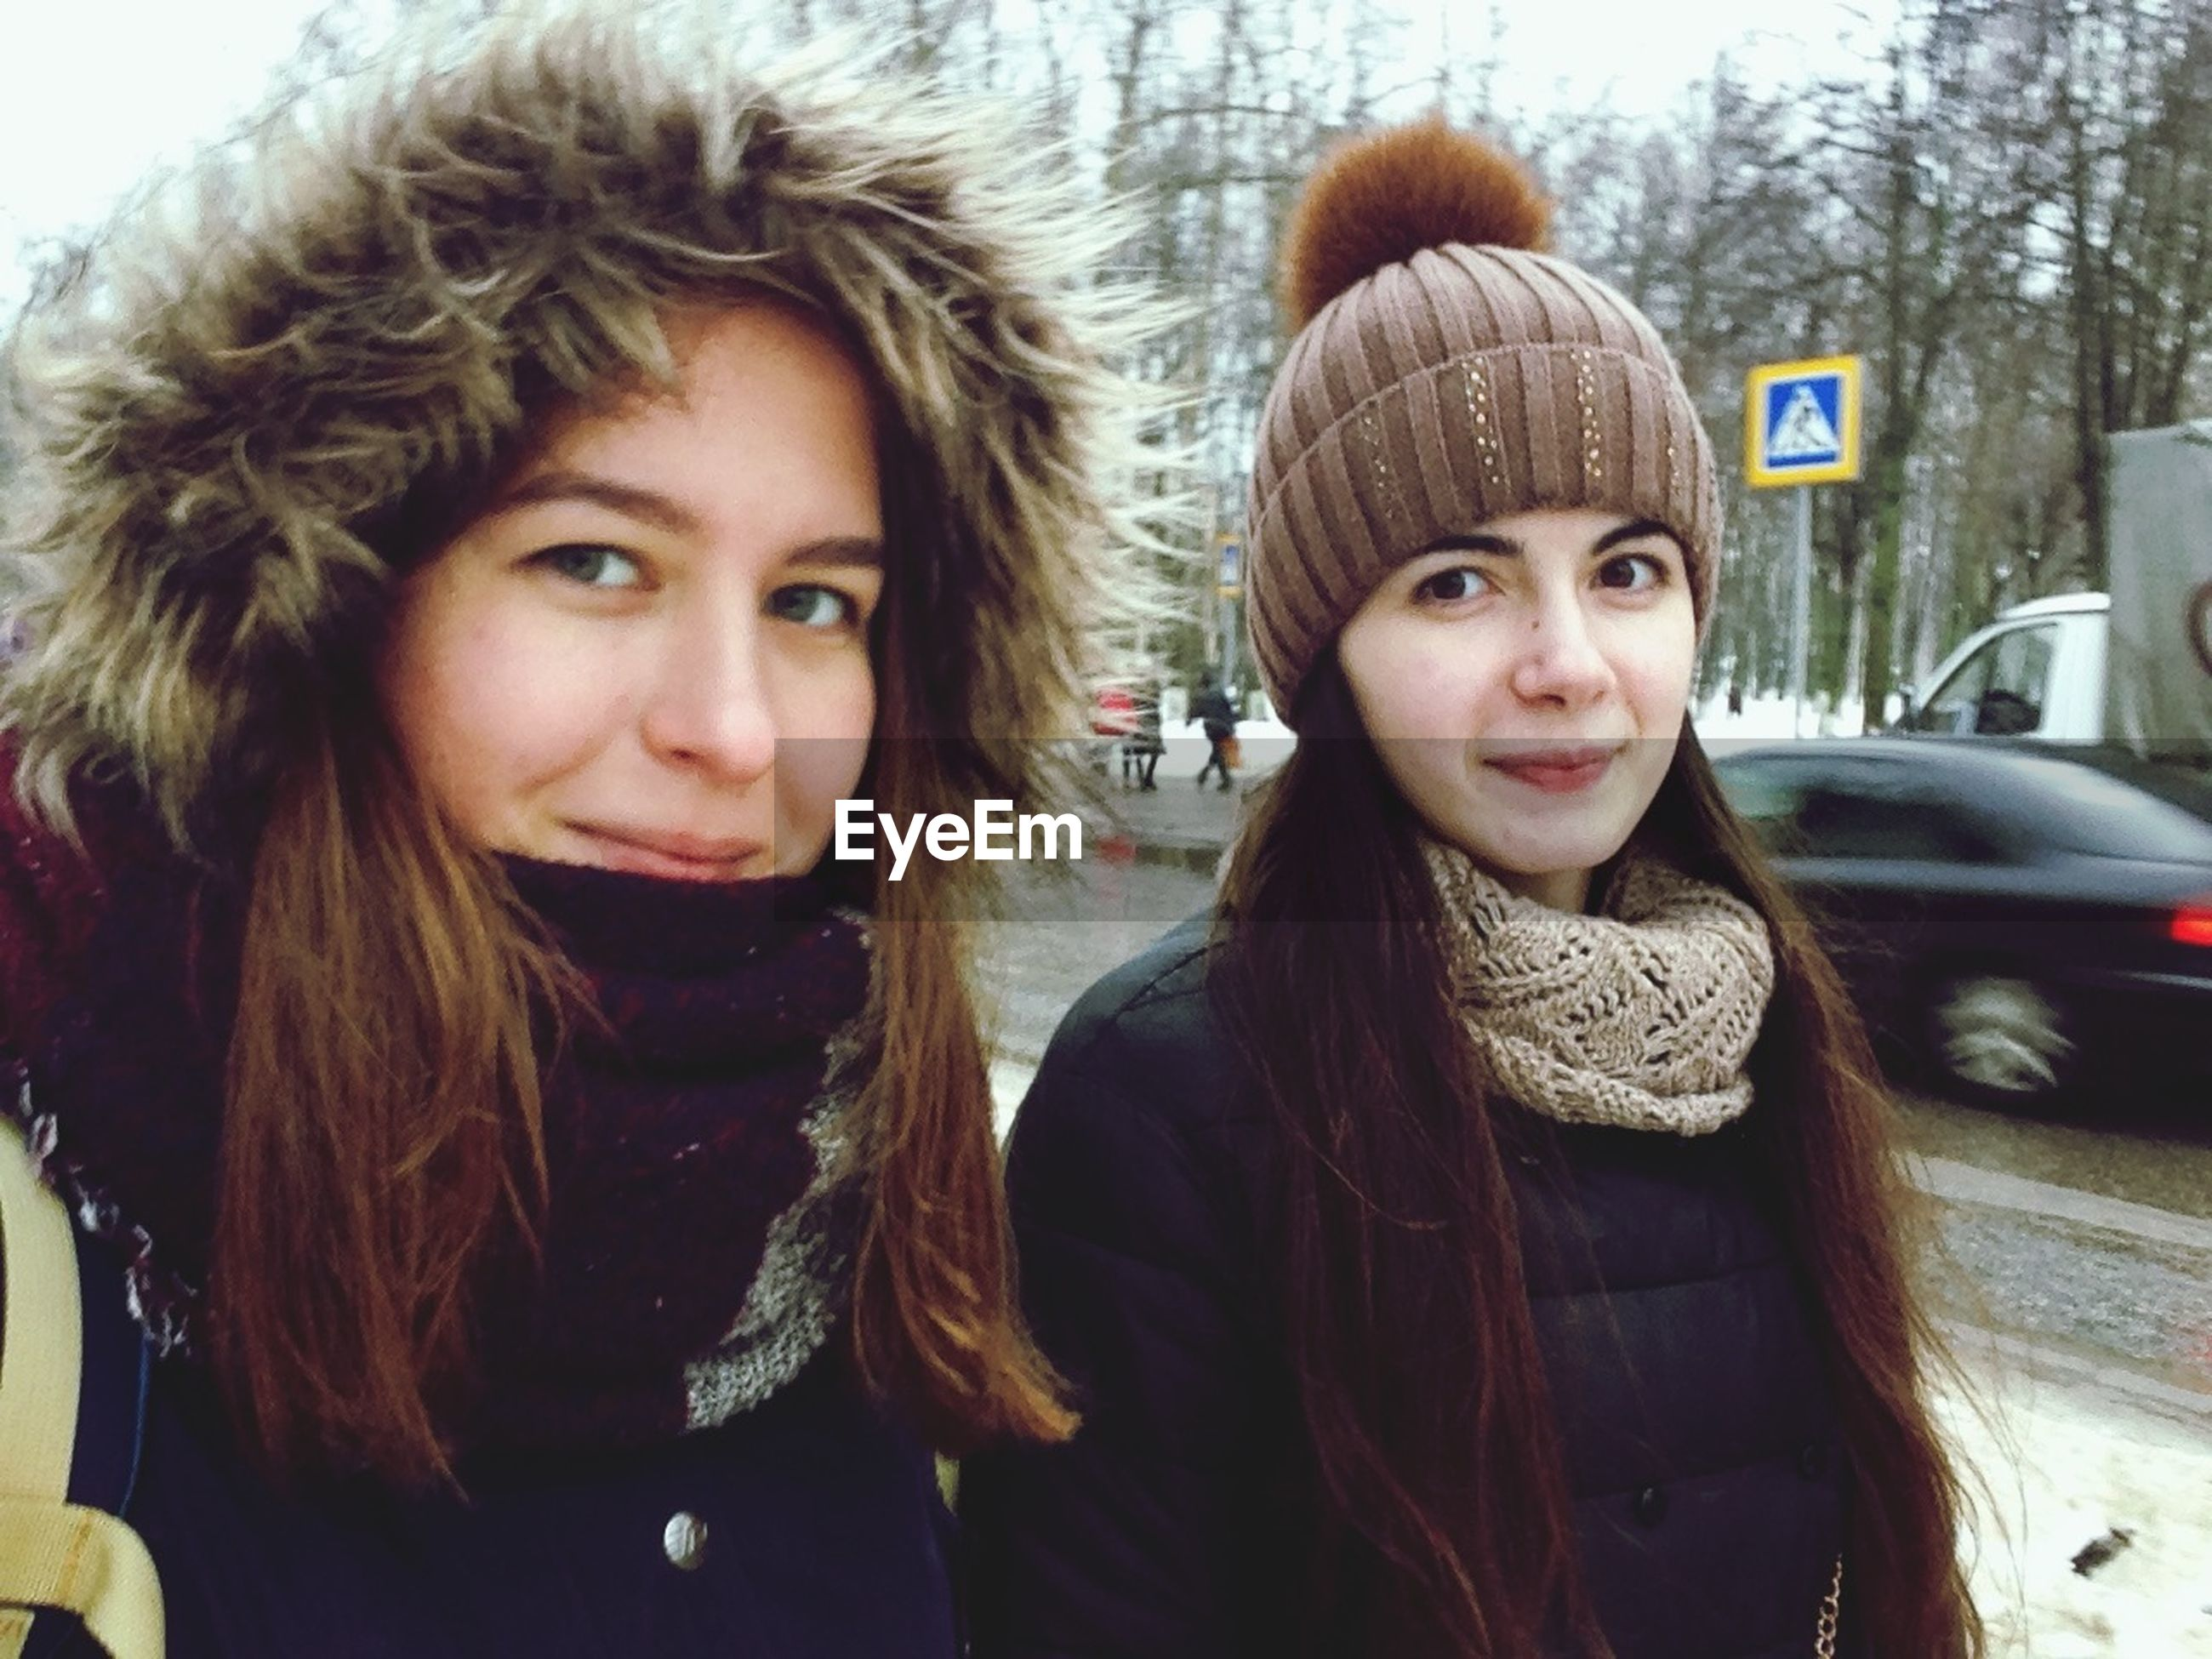 looking at camera, portrait, winter, warm clothing, two people, cold temperature, front view, real people, leisure activity, weather, smiling, headshot, lifestyles, young women, young adult, knit hat, fur hat, outdoors, snow, standing, women, togetherness, day, close-up, tree, architecture, people, adult